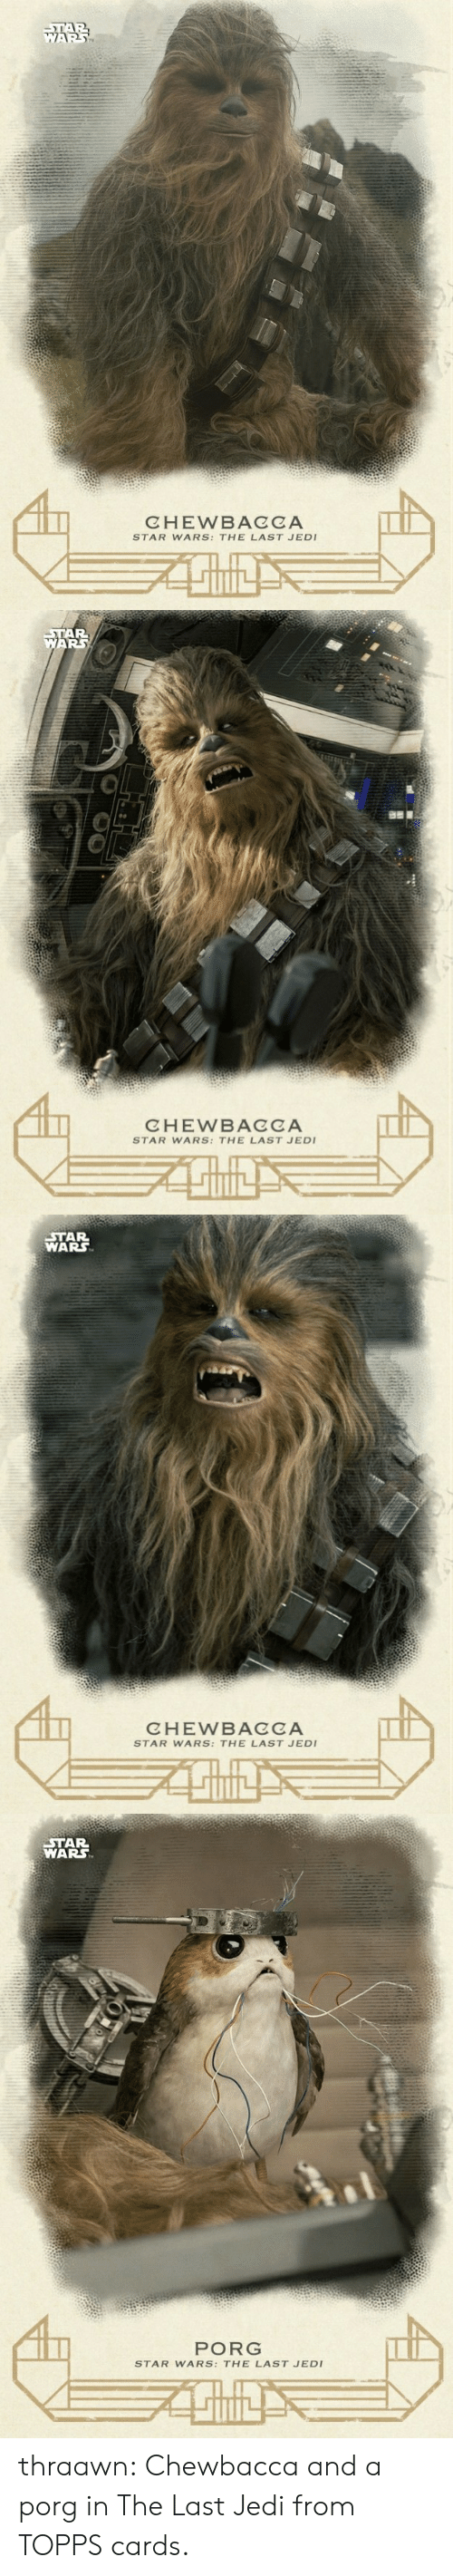 Chewbacca, Jedi, and Star Wars: CHEWBACCA  STAR WARS: THE LAST JEDI   AR  CHEWBACCA  STAR WARS: THE LAST JED   STAR  WARS  CHEWBACCA  STAR WARS: THE LAST JEDI   STAR  WARS  PORG  STAR WARS: THE LAST JEDI thraawn:  Chewbacca and a porg in The Last Jedi from TOPPS cards.